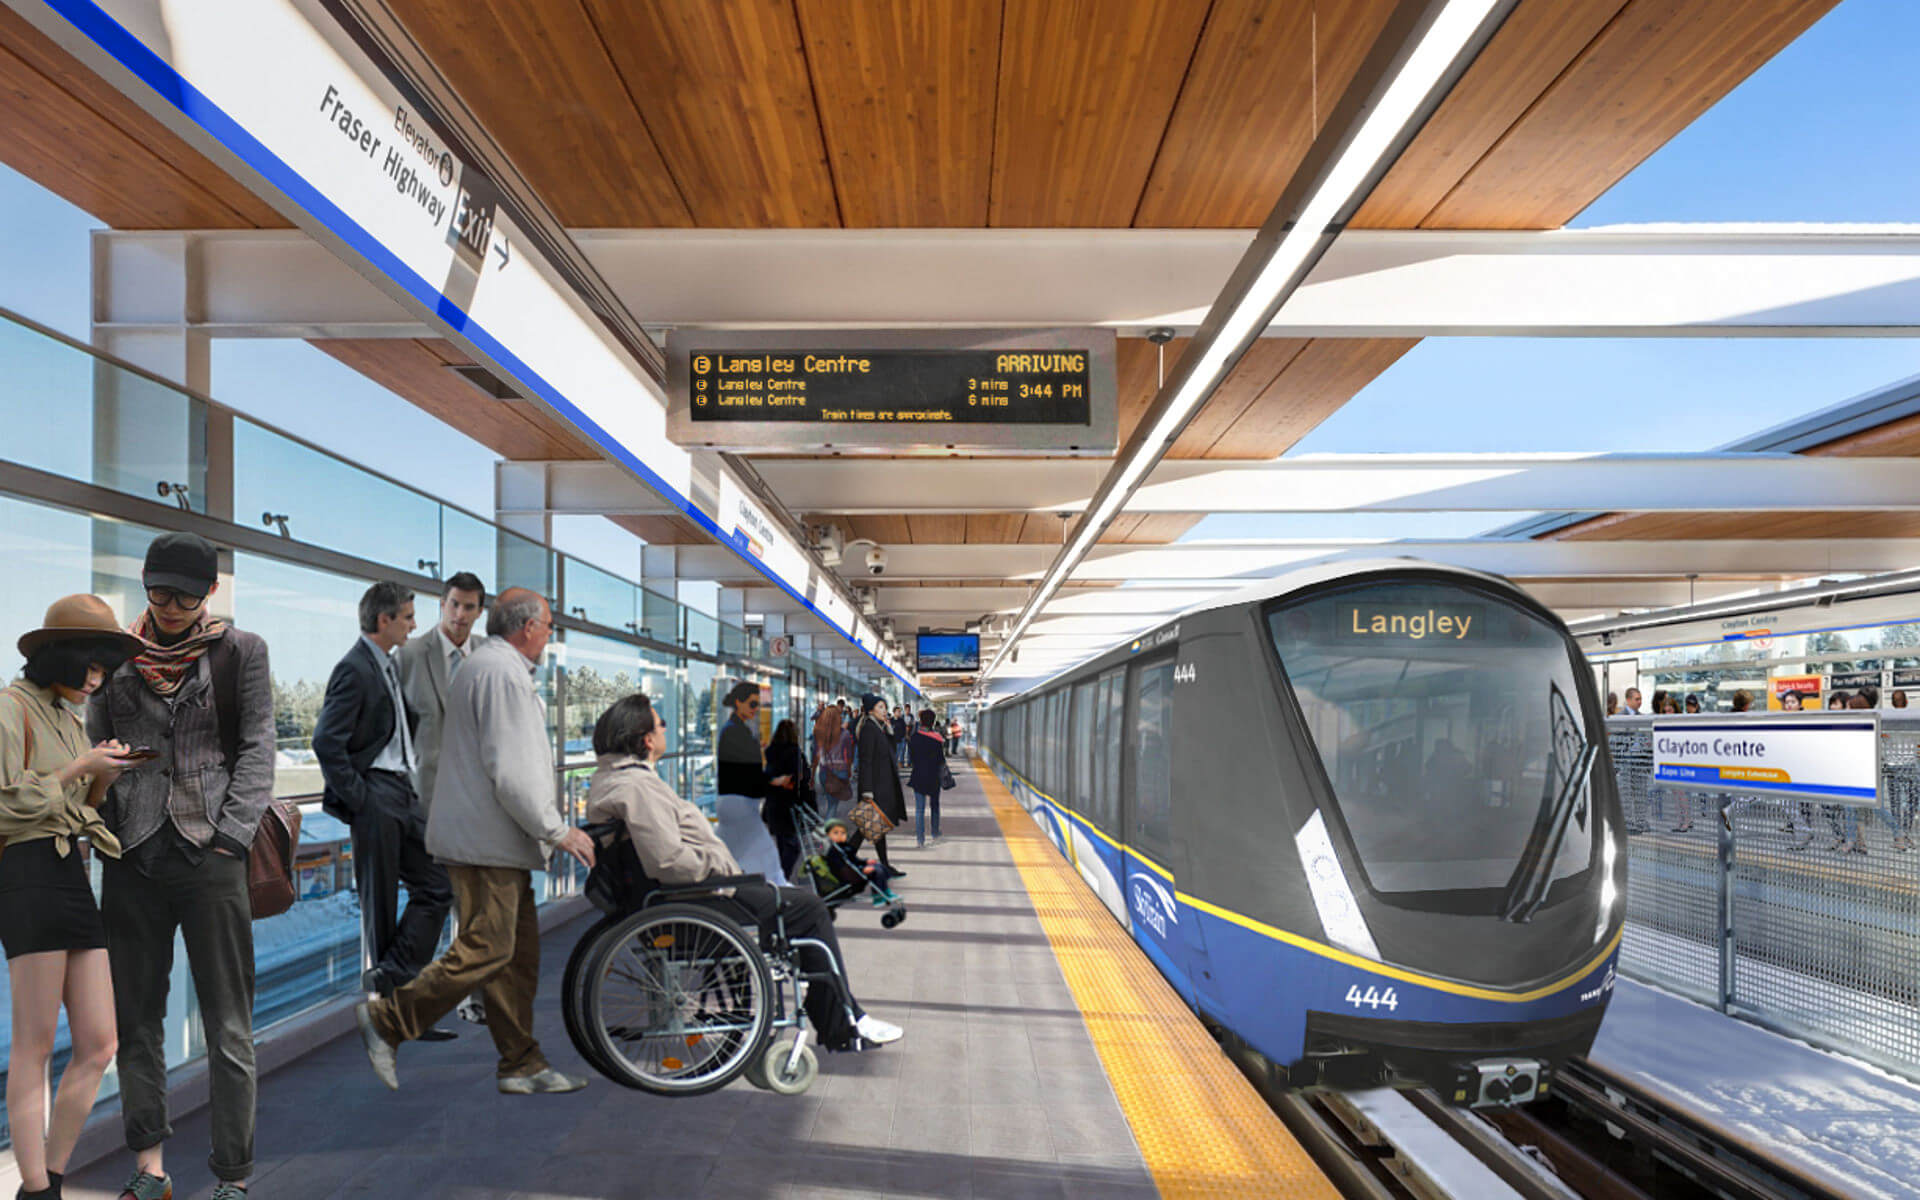 Cancellation of LRT in favour of SkyTrain is a victory for Surrey and region